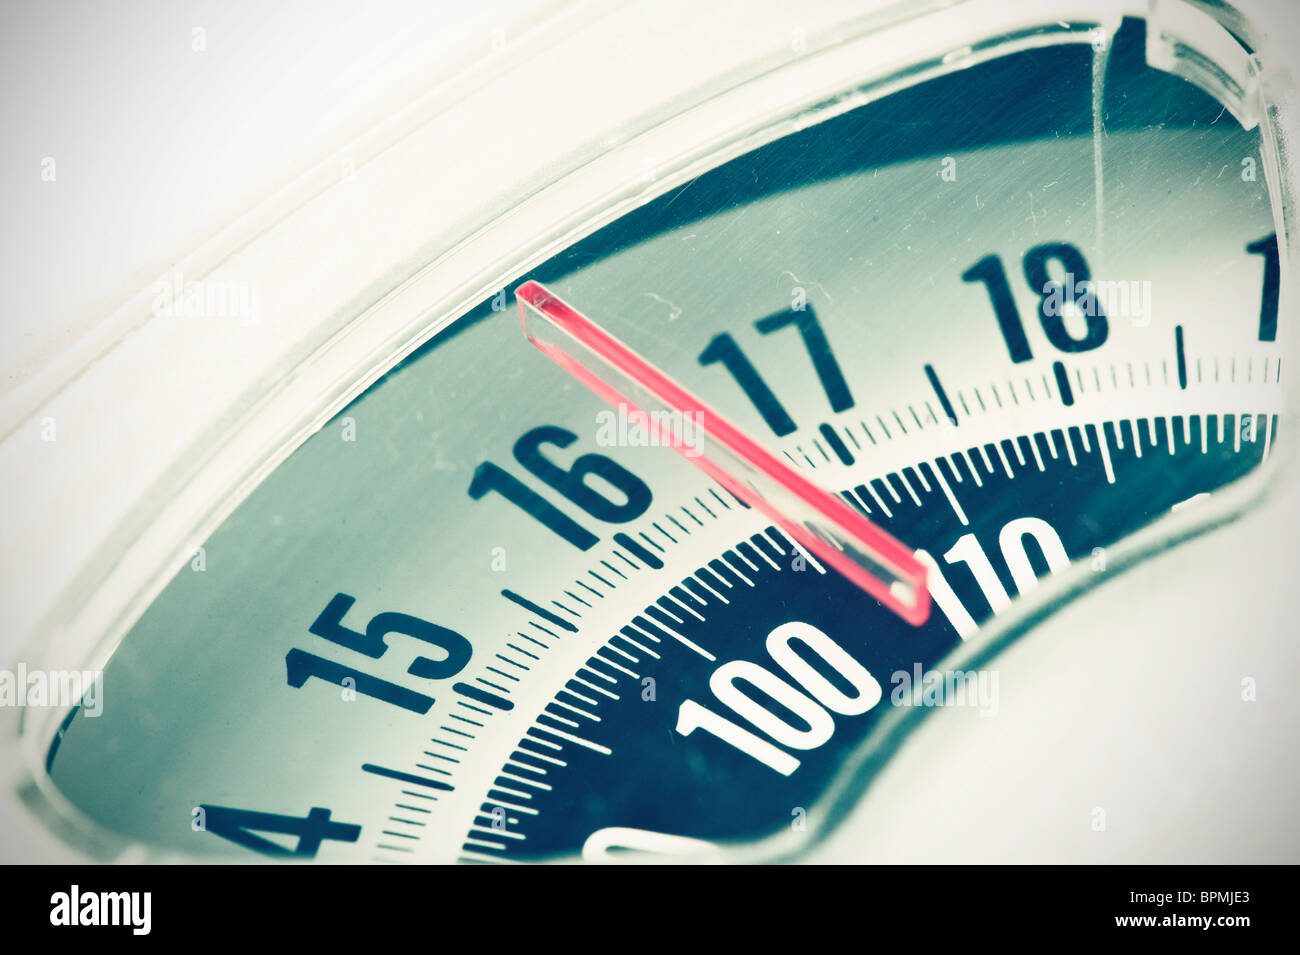 Shot of home scales - Stock Image